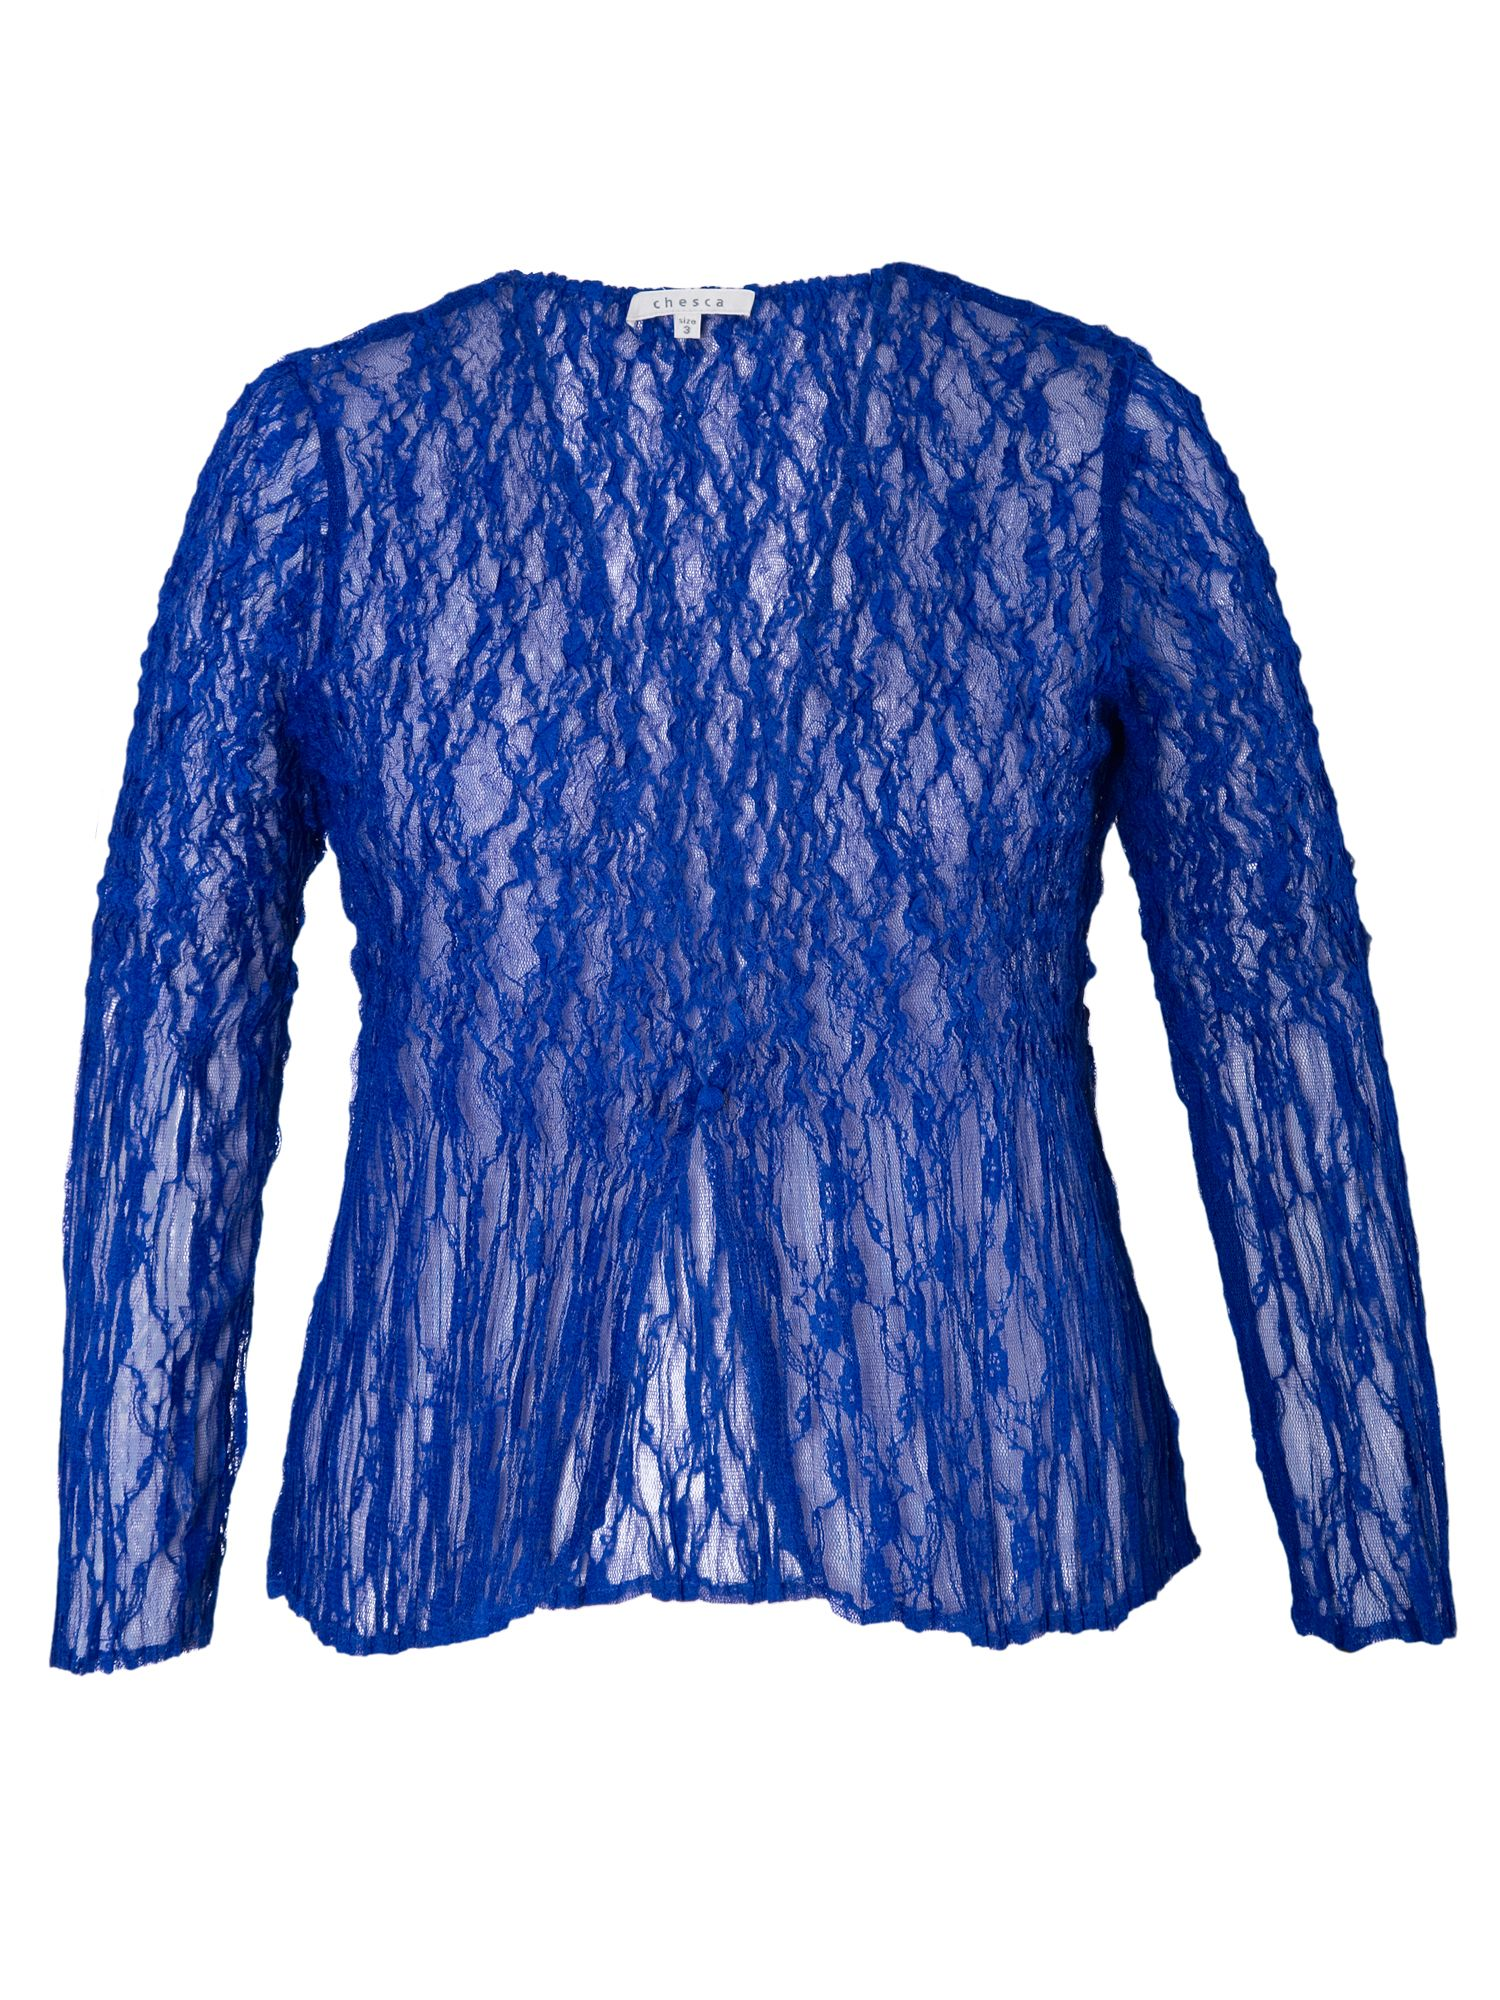 Crush pleat lace jacket